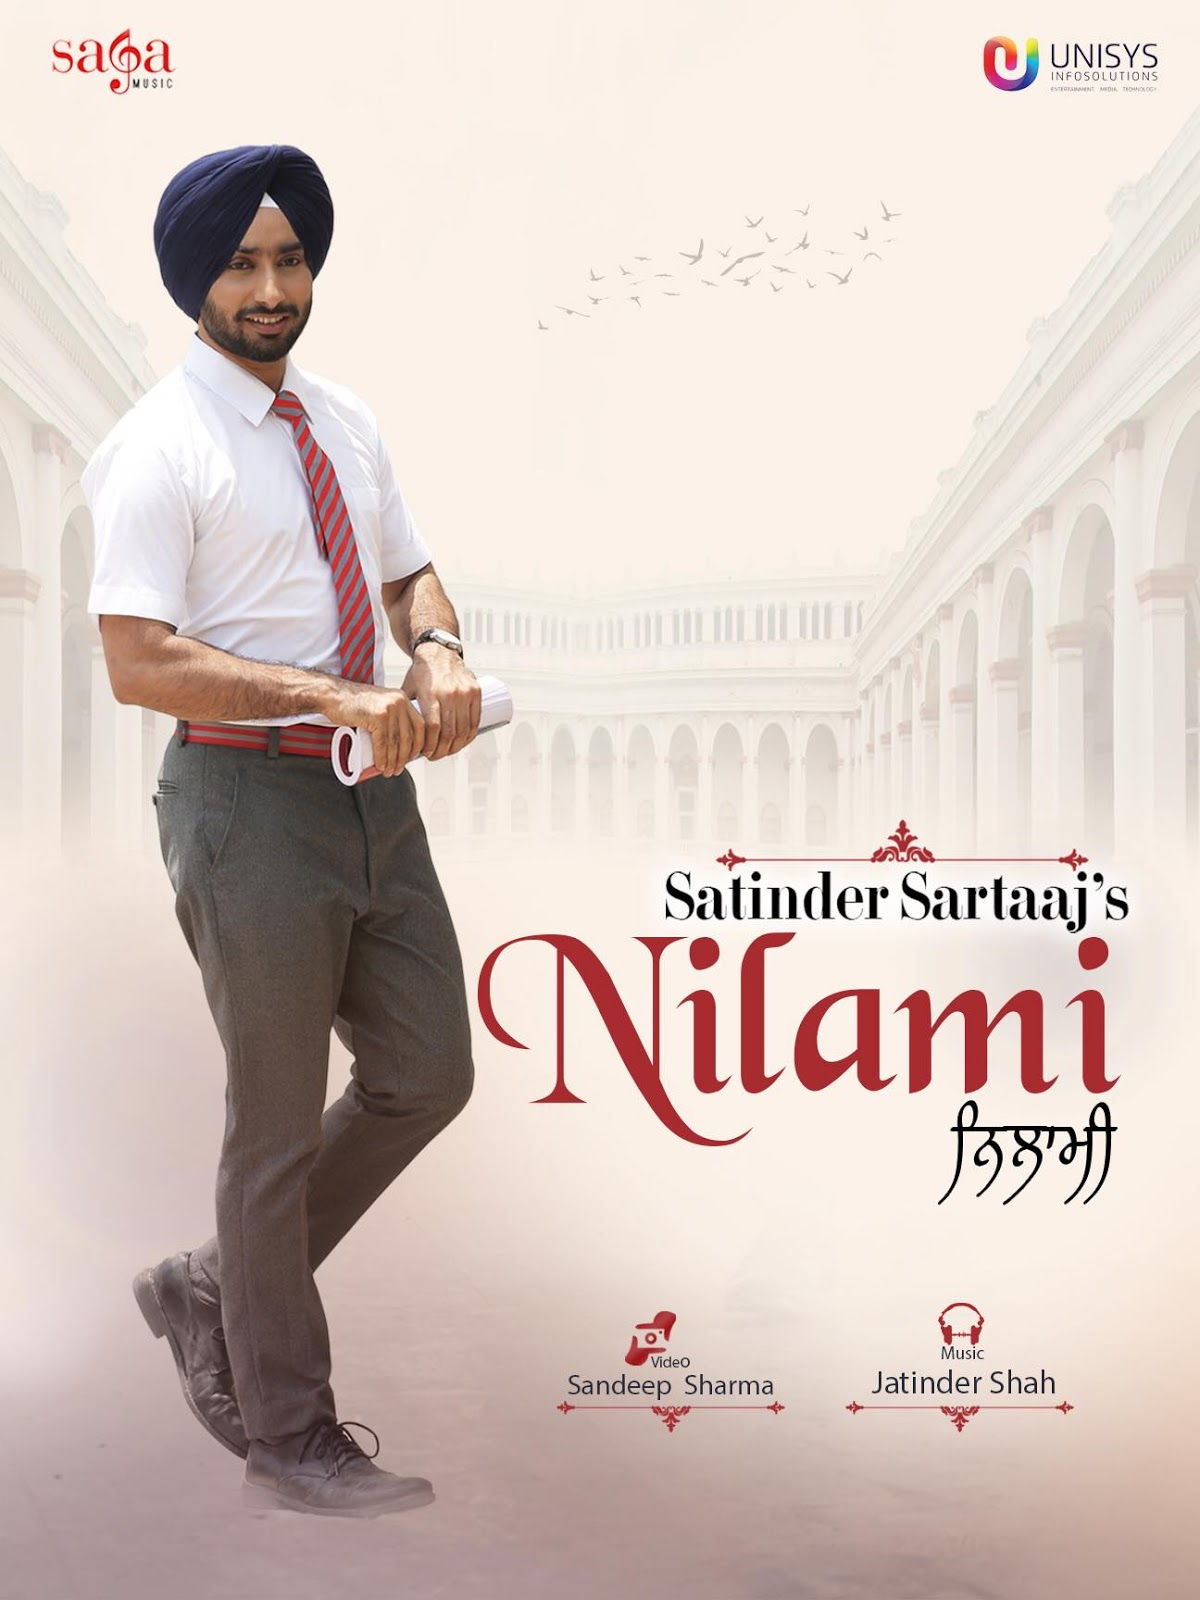 satinder sartaj,seasons of sartaaj,nilami lyrics in english